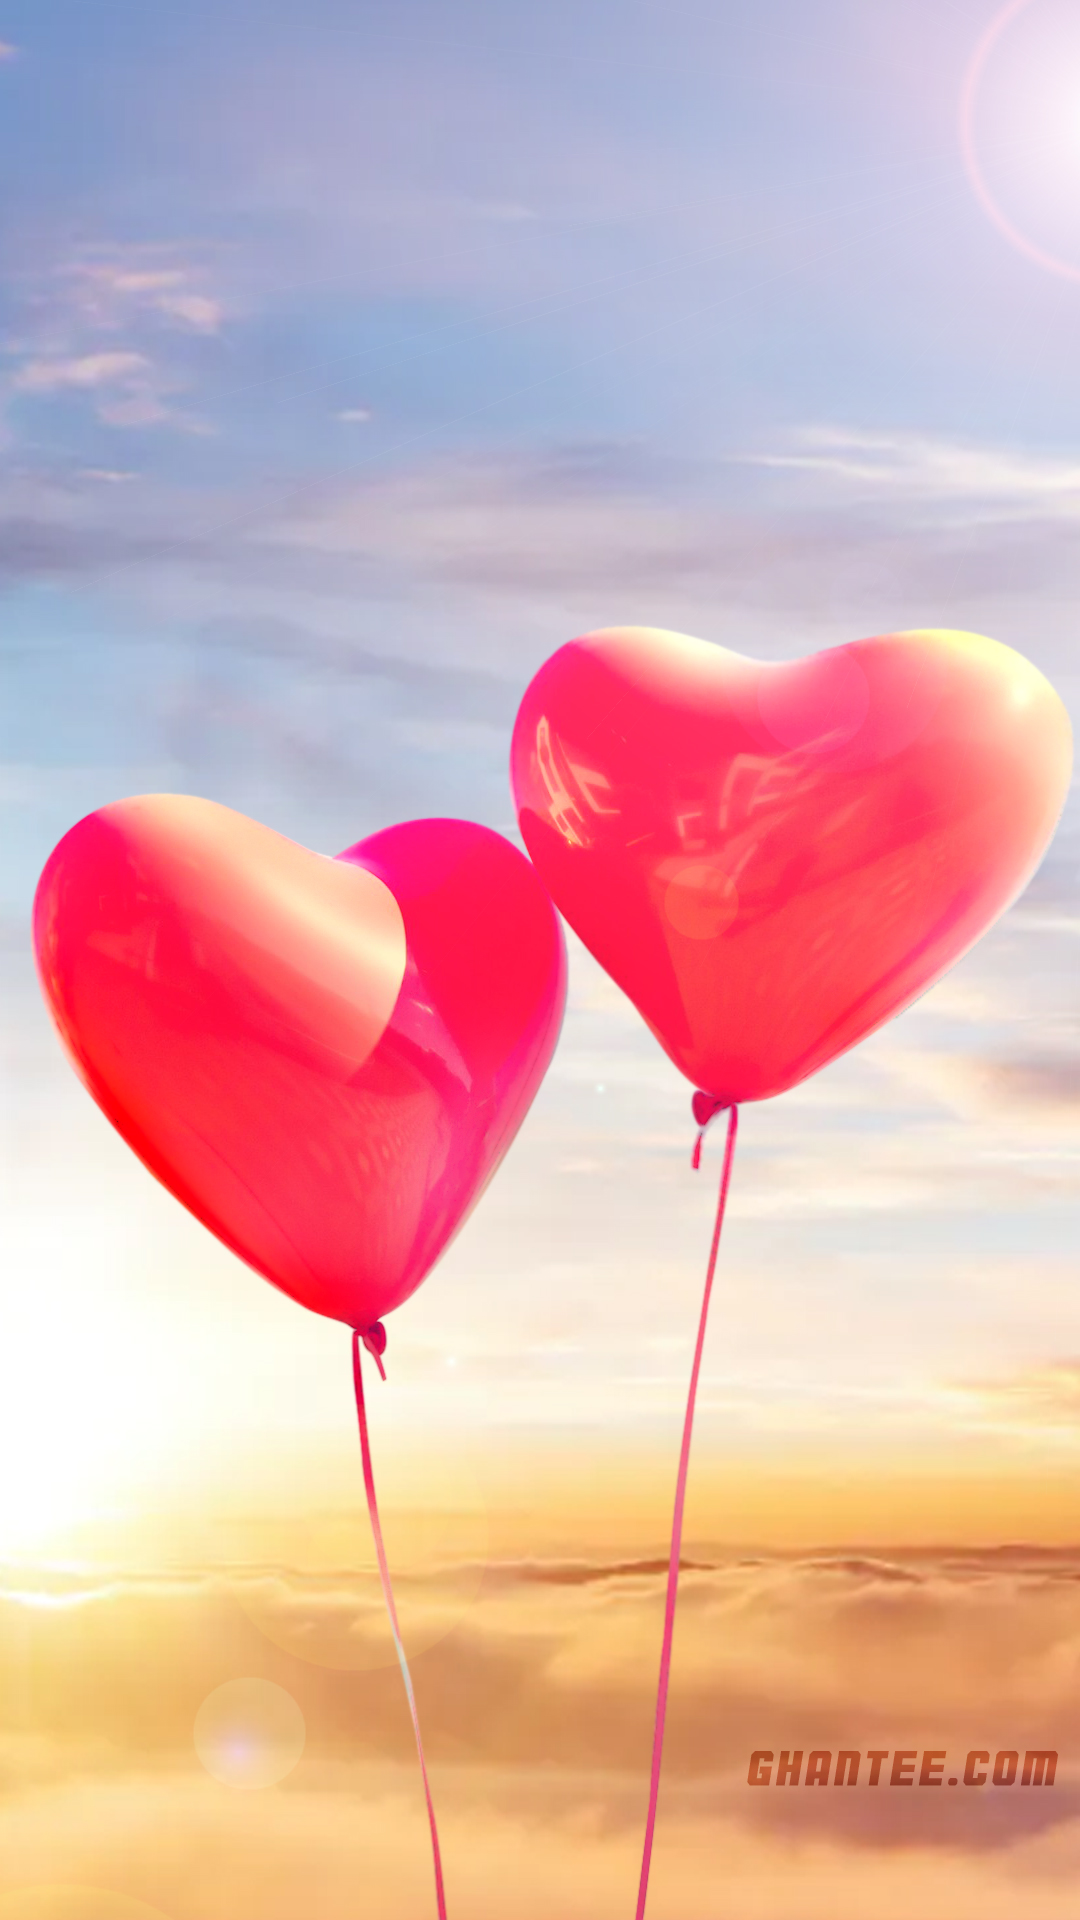 heart balloon love phone wallpaper | 1080×1920